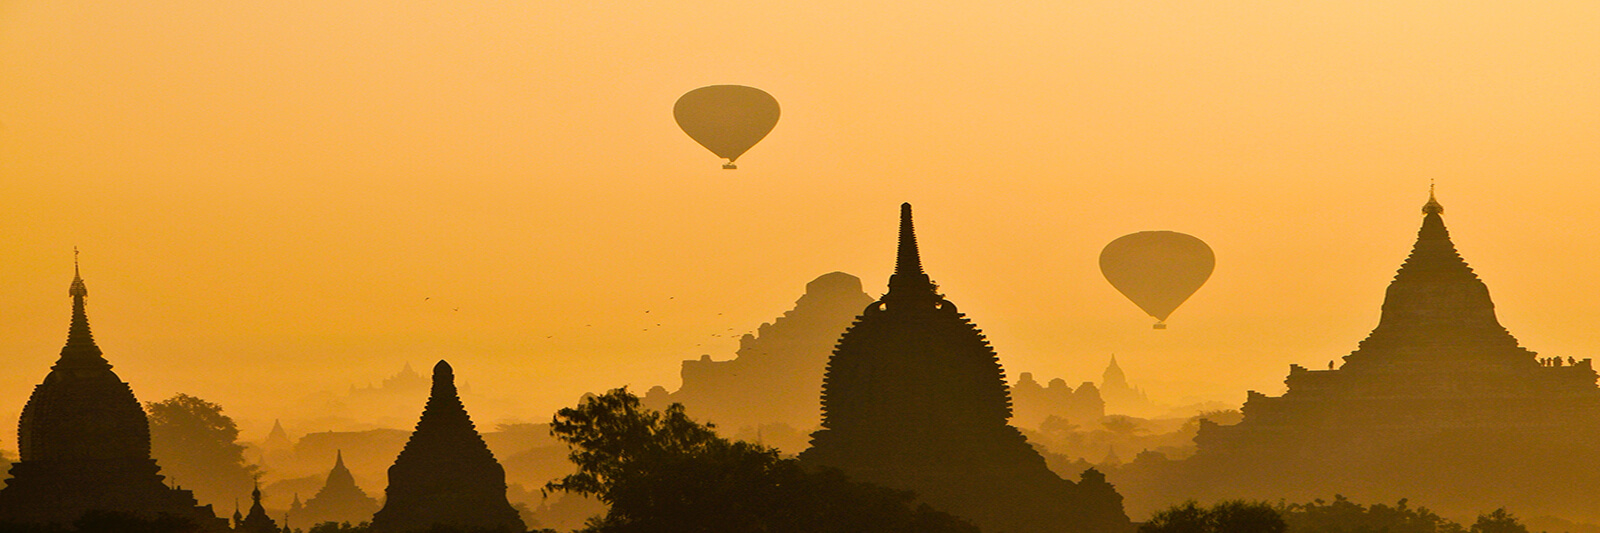 Hot air ballons over old Bagan, Myanmar at sunset